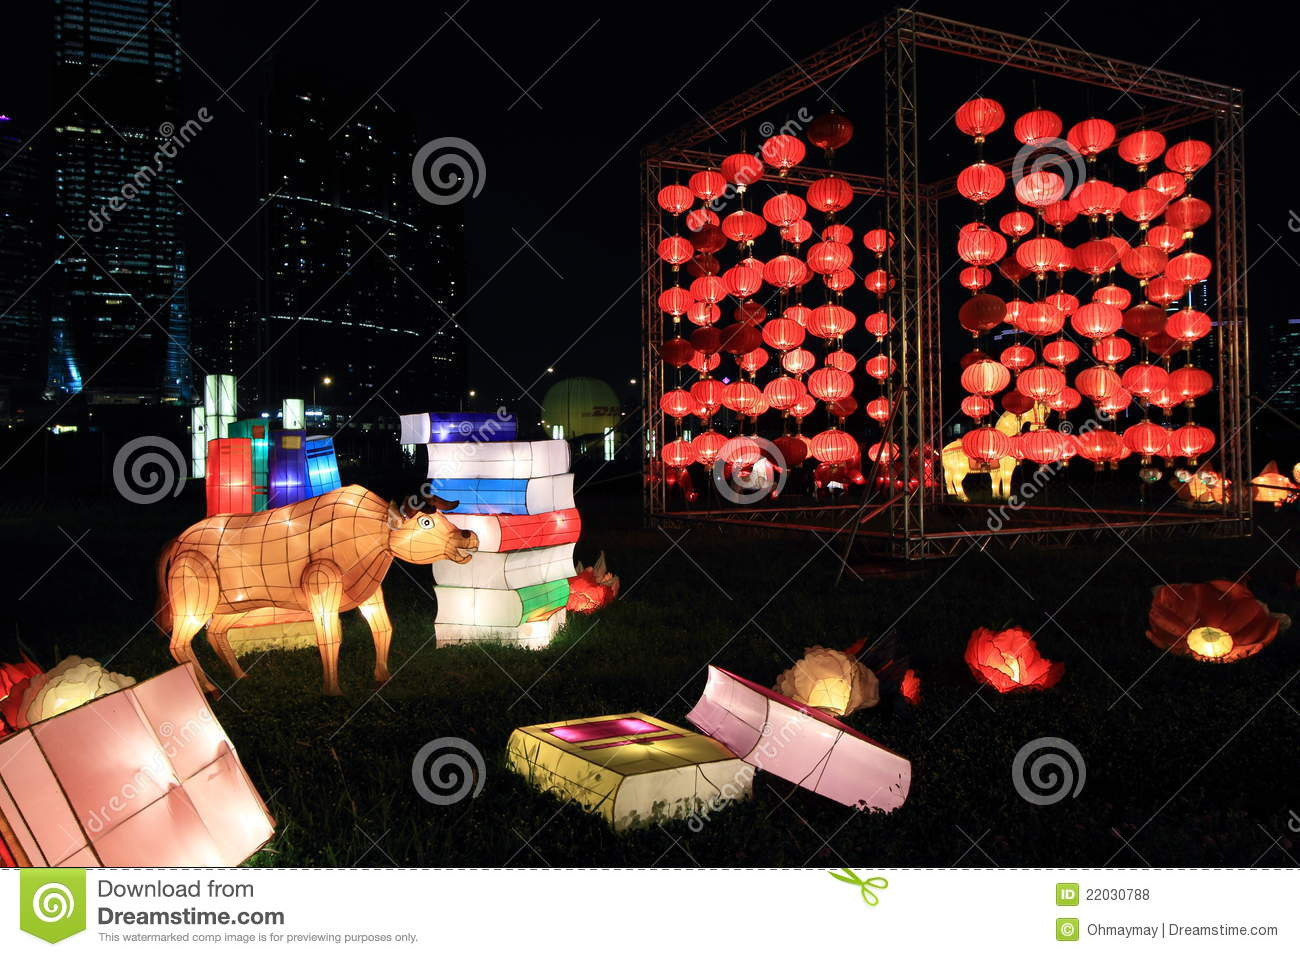 Chinese lanterns for mid-autumn festival